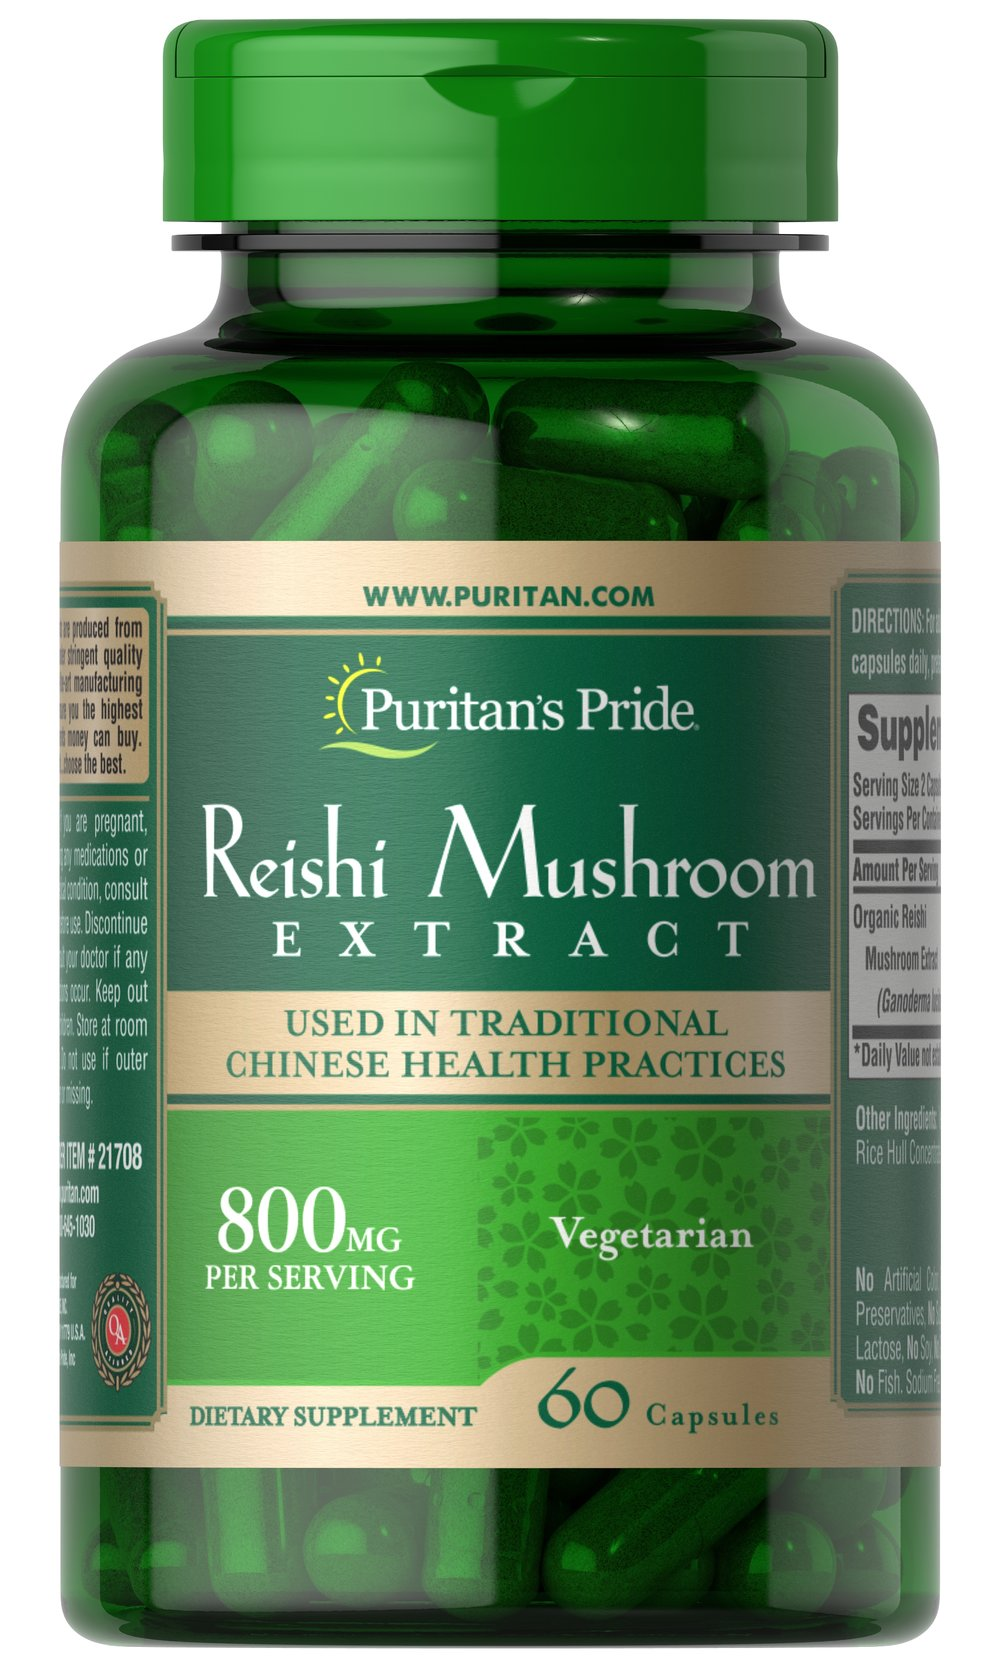 Reishi Mushroom Extract Thumbnail Alternate Bottle View